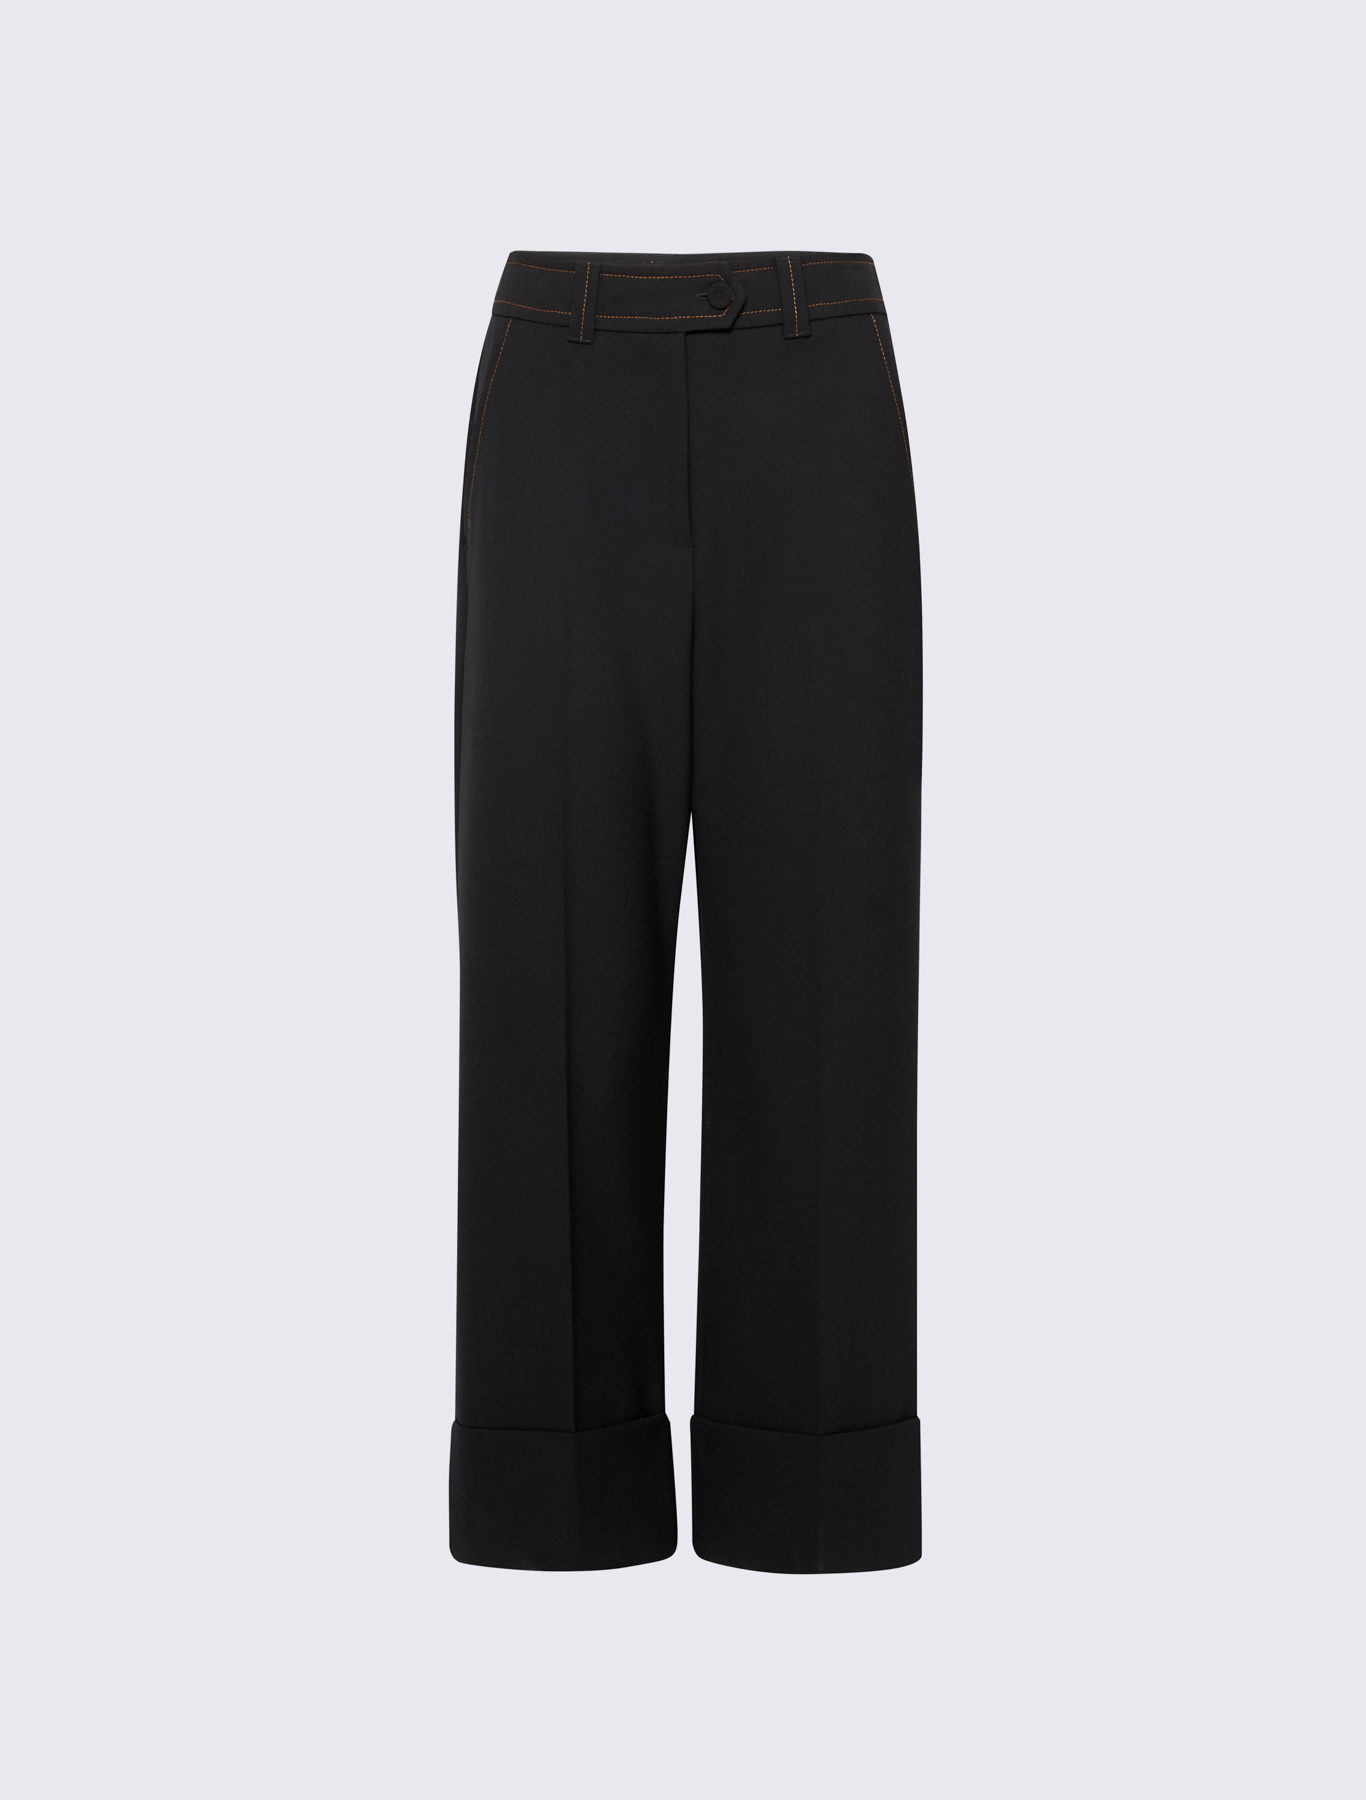 catch big sale low price sale Cropped trousers, black - Marella